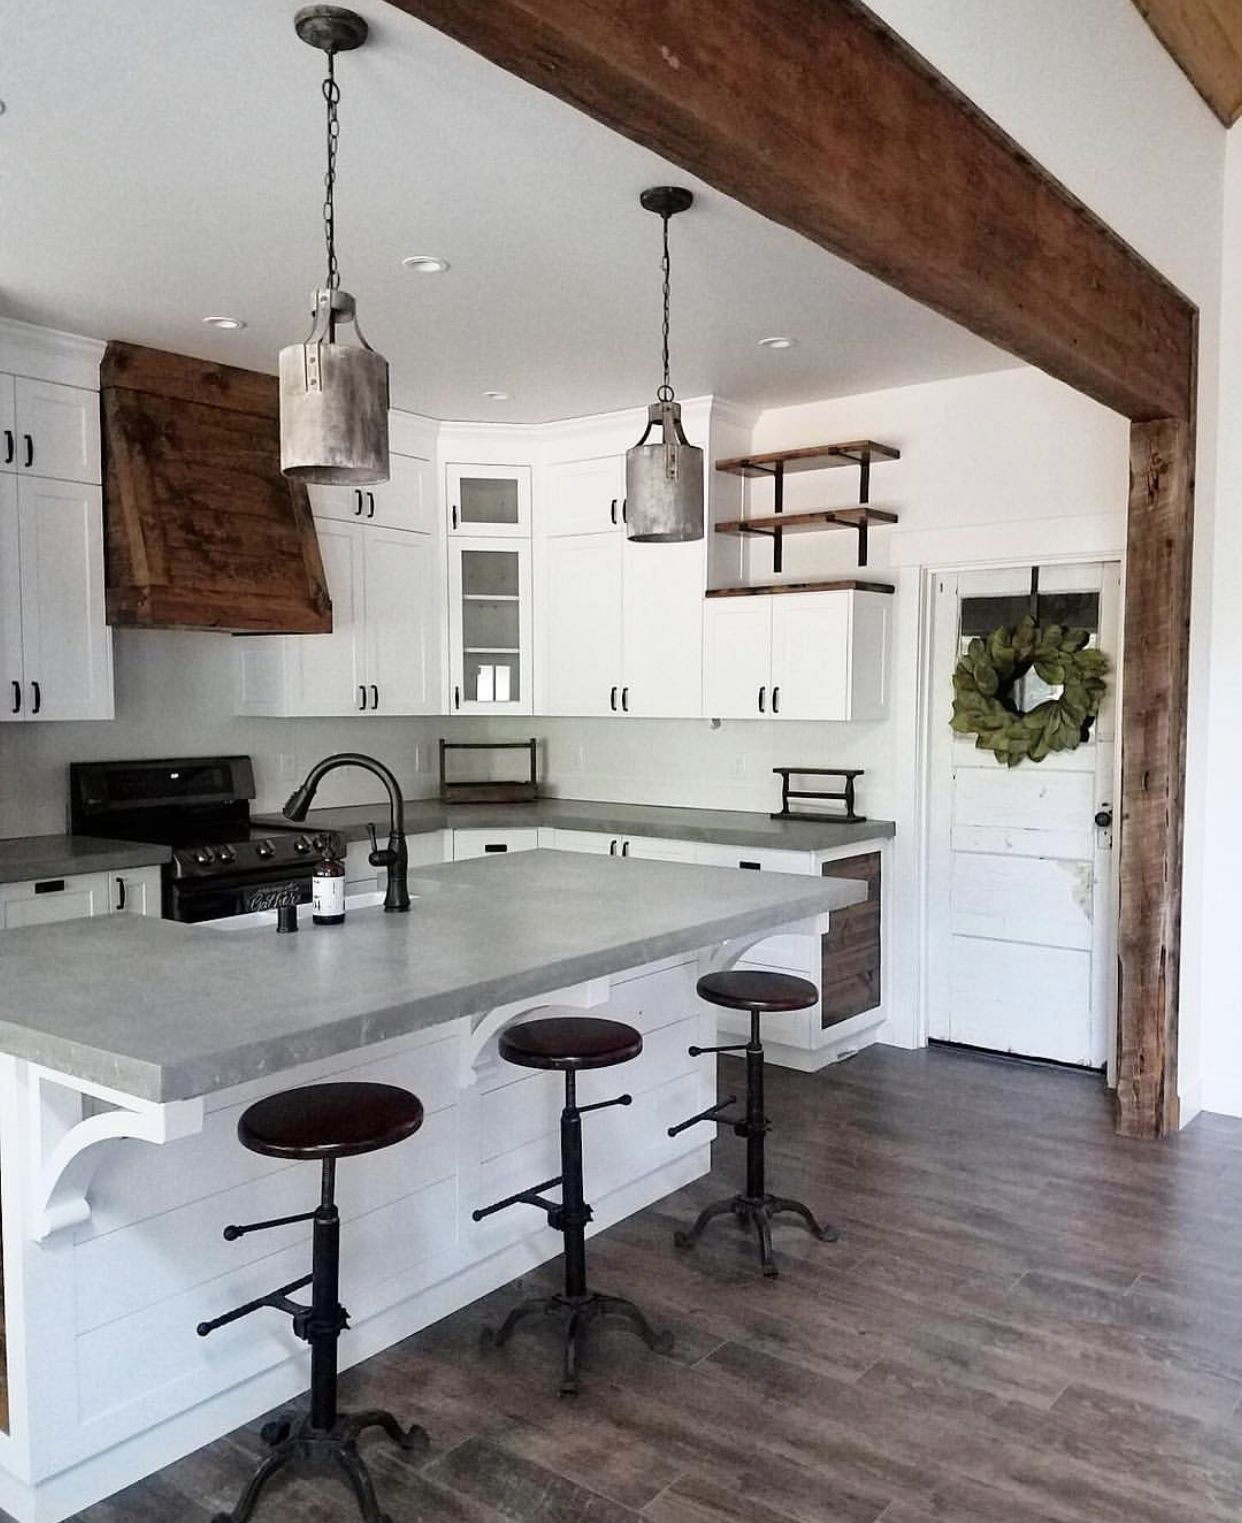 Home decor kitchen new design kitchens farmhouse also pin by aoife mcaleer on my ideas in house rh pinterest